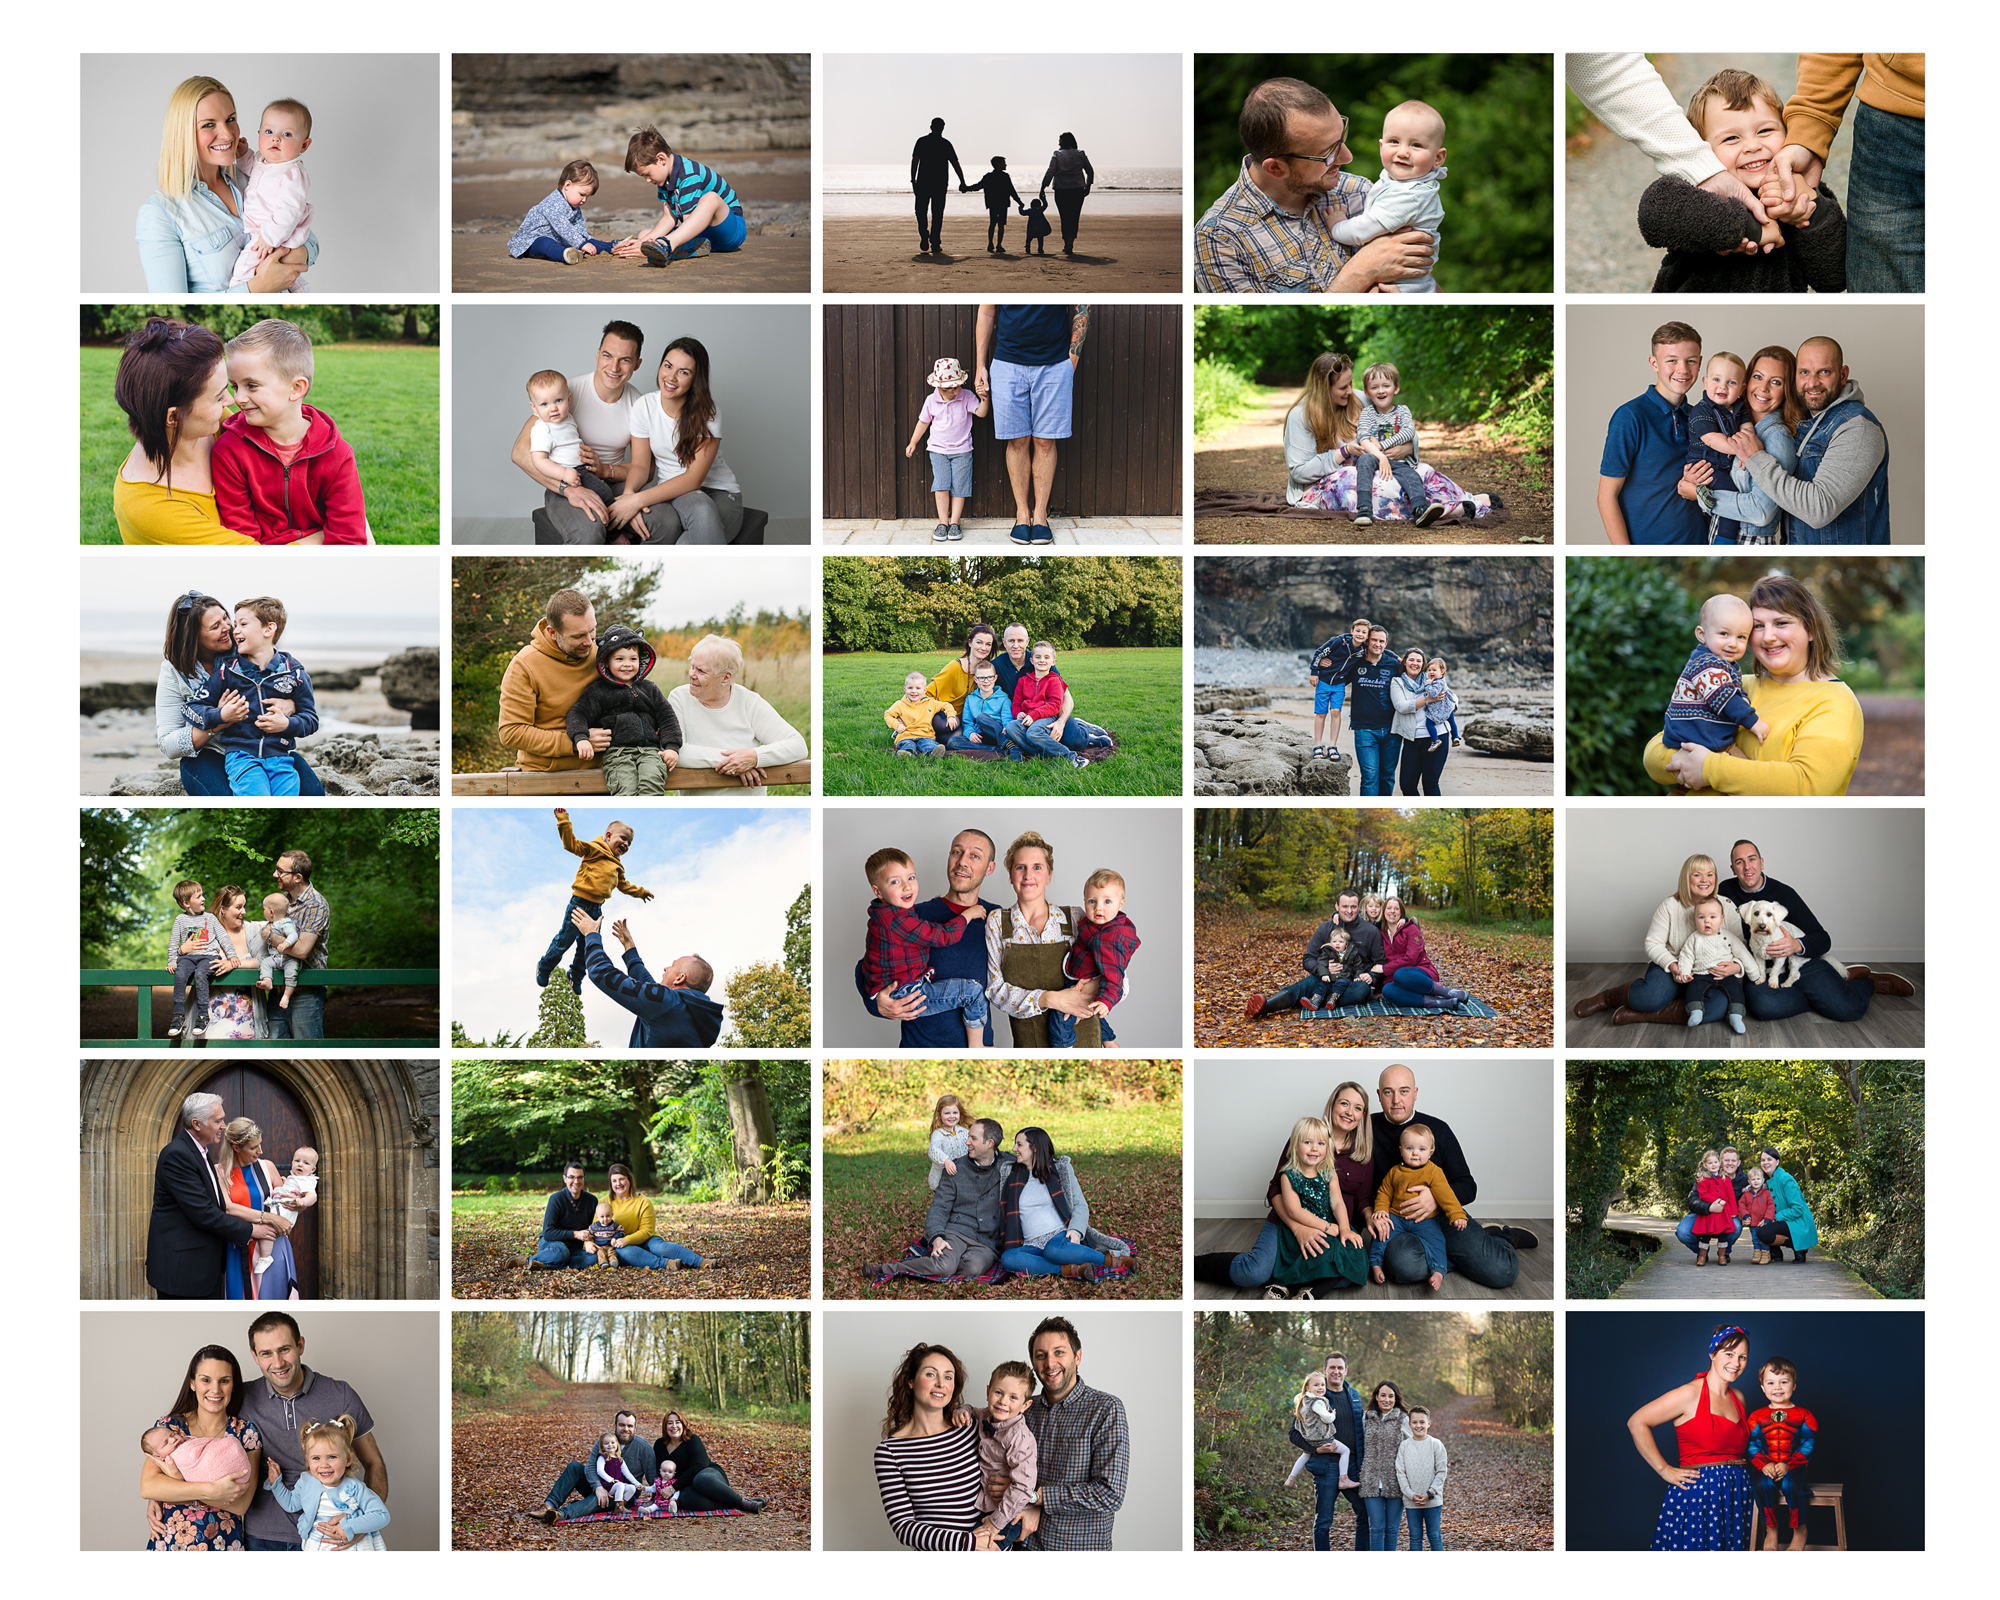 Family and children photographer south wales, Caerphilly near Cardiff